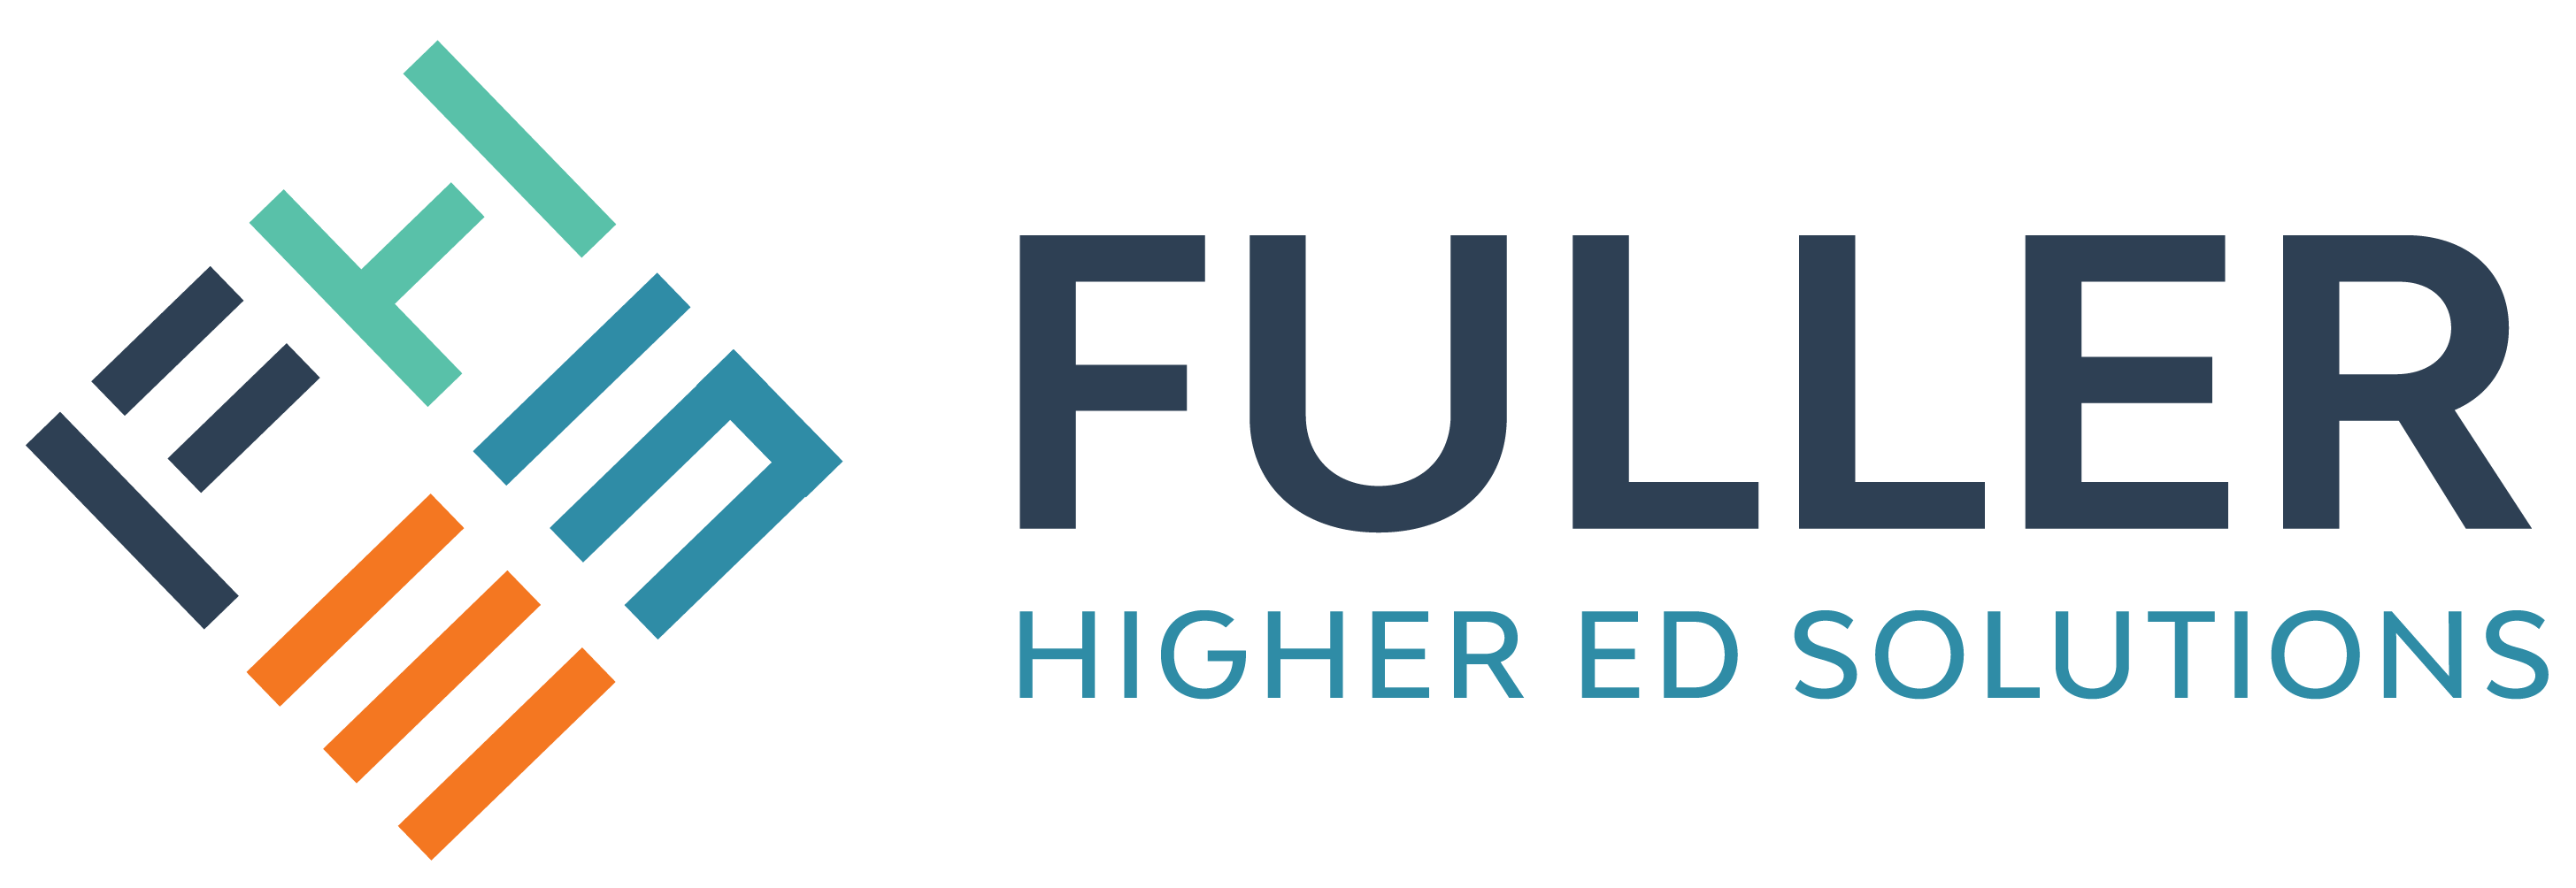 Fuller Higher Ed Solutions